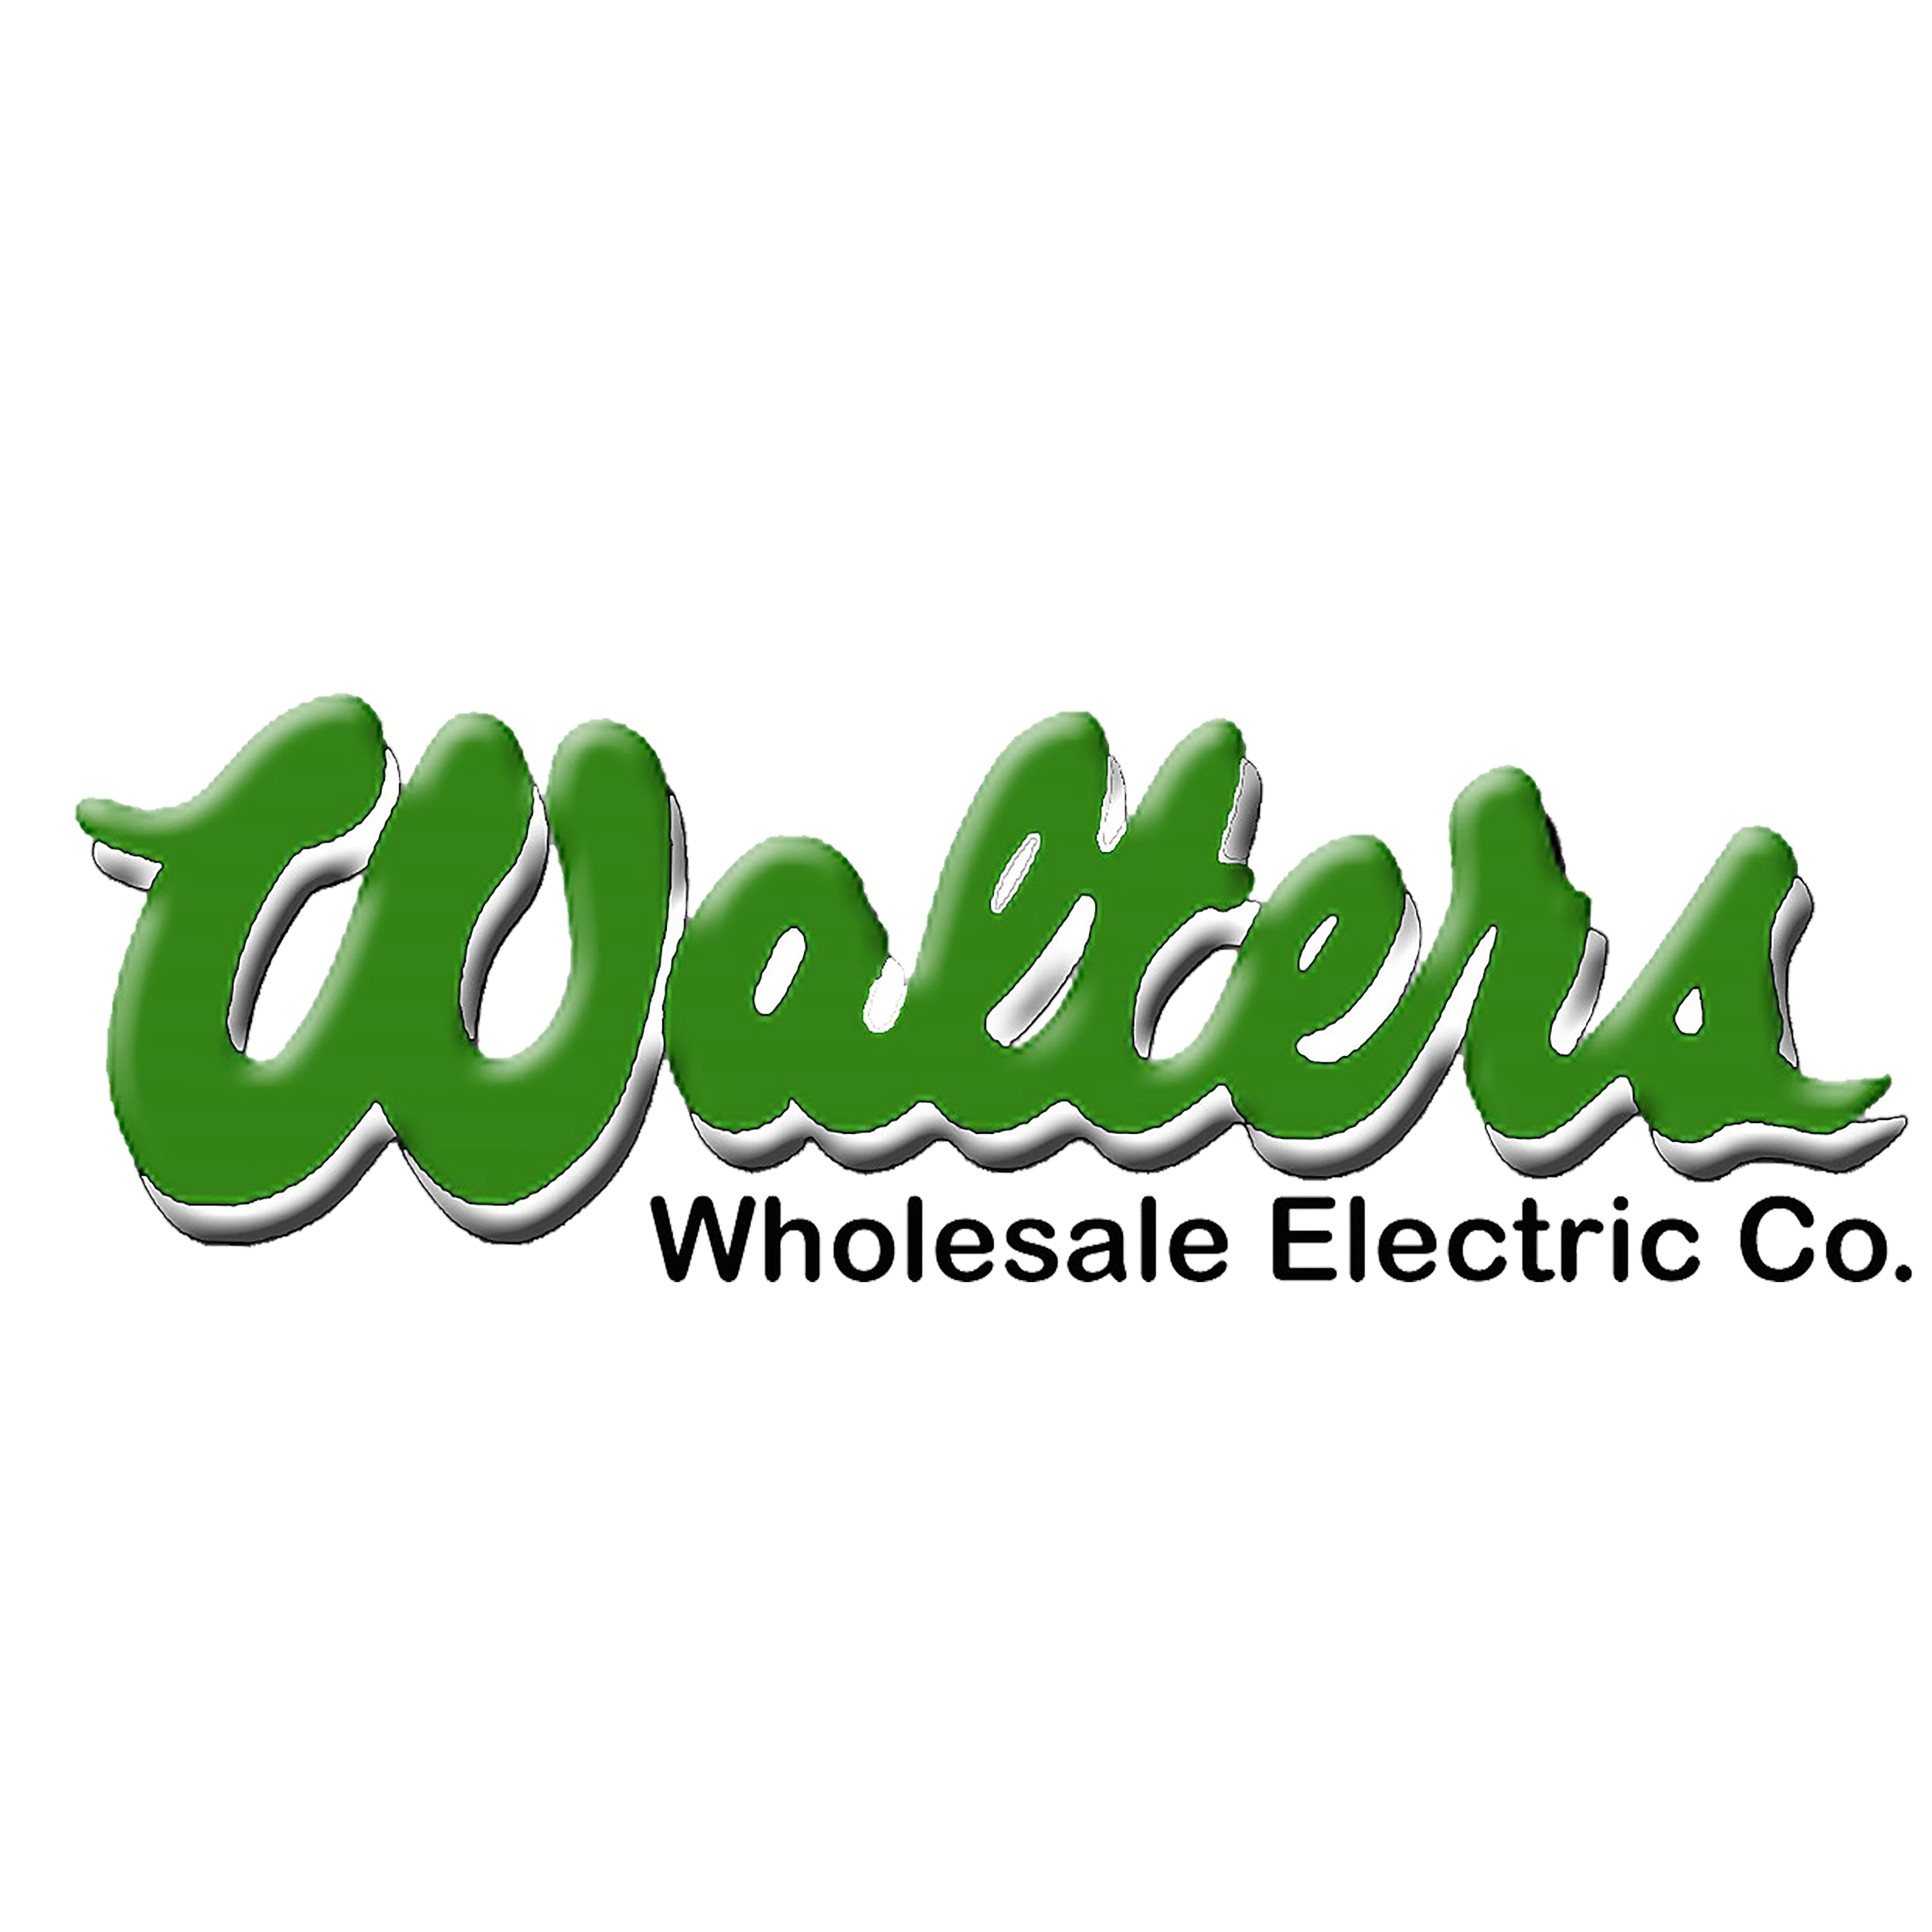 Walters Wholesale Electric Co. - Residential Lighting Division